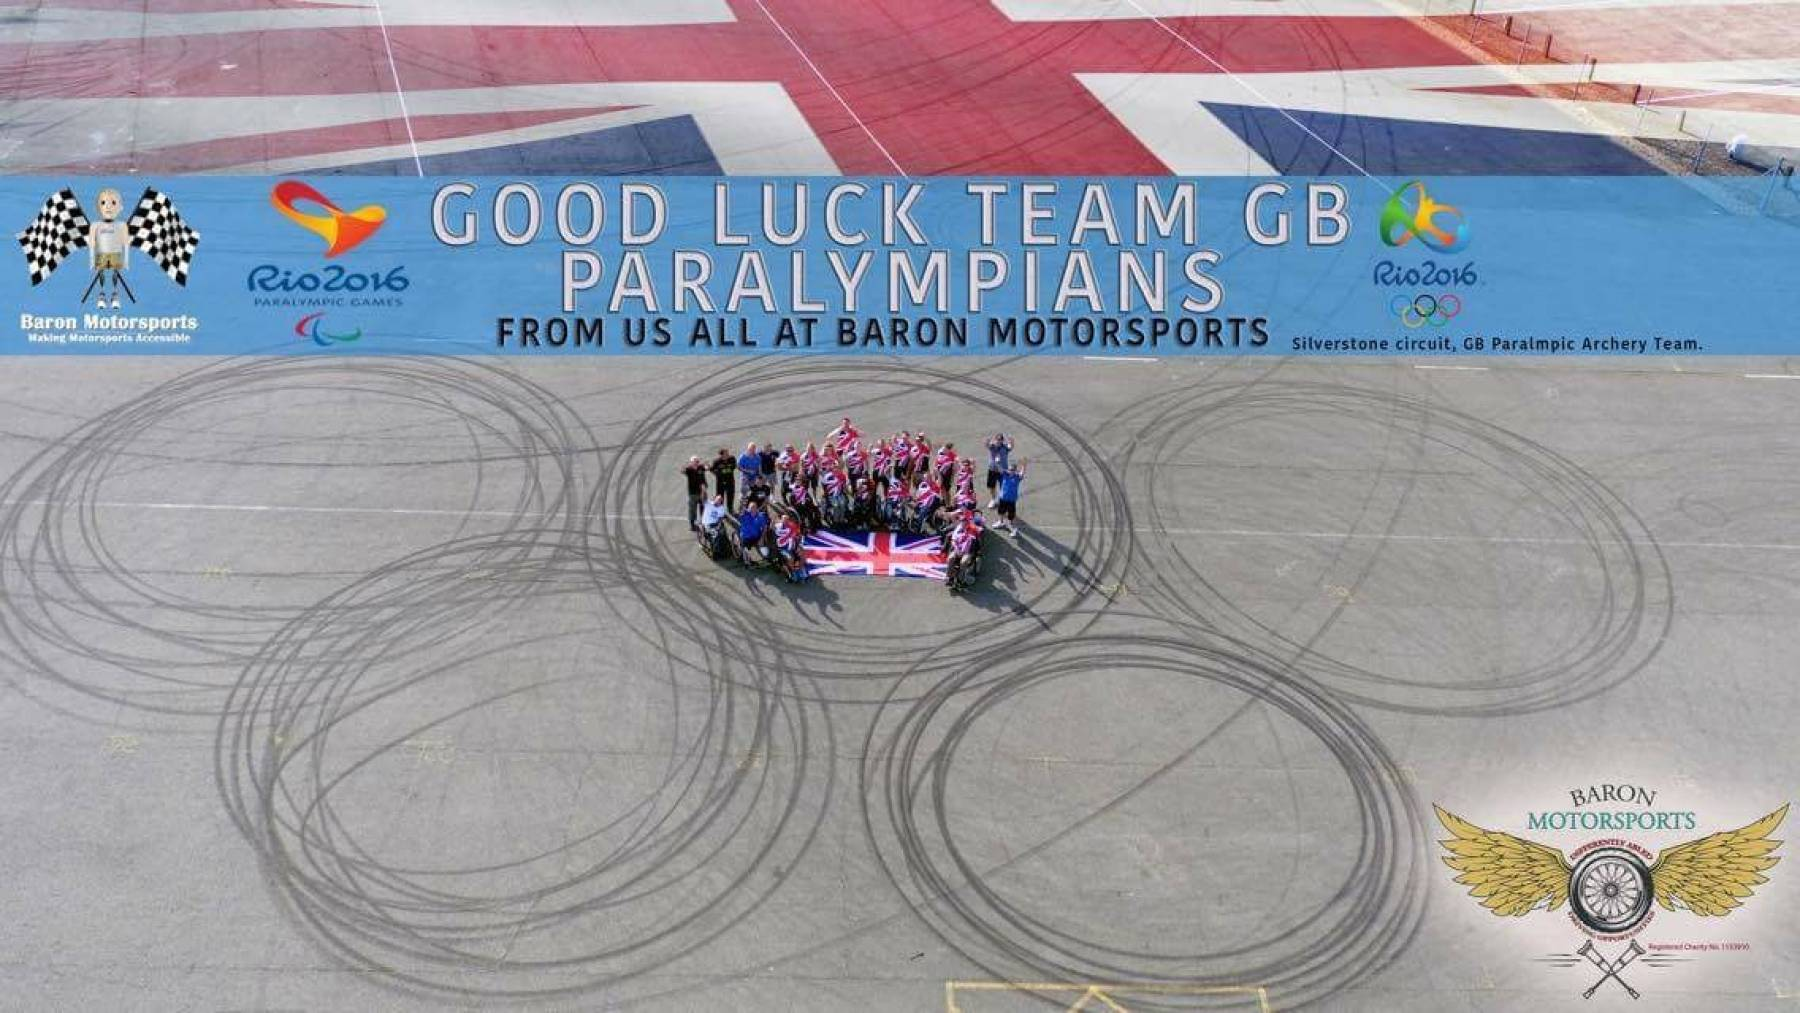 Good Luck to the ParalympicsGB Archery team